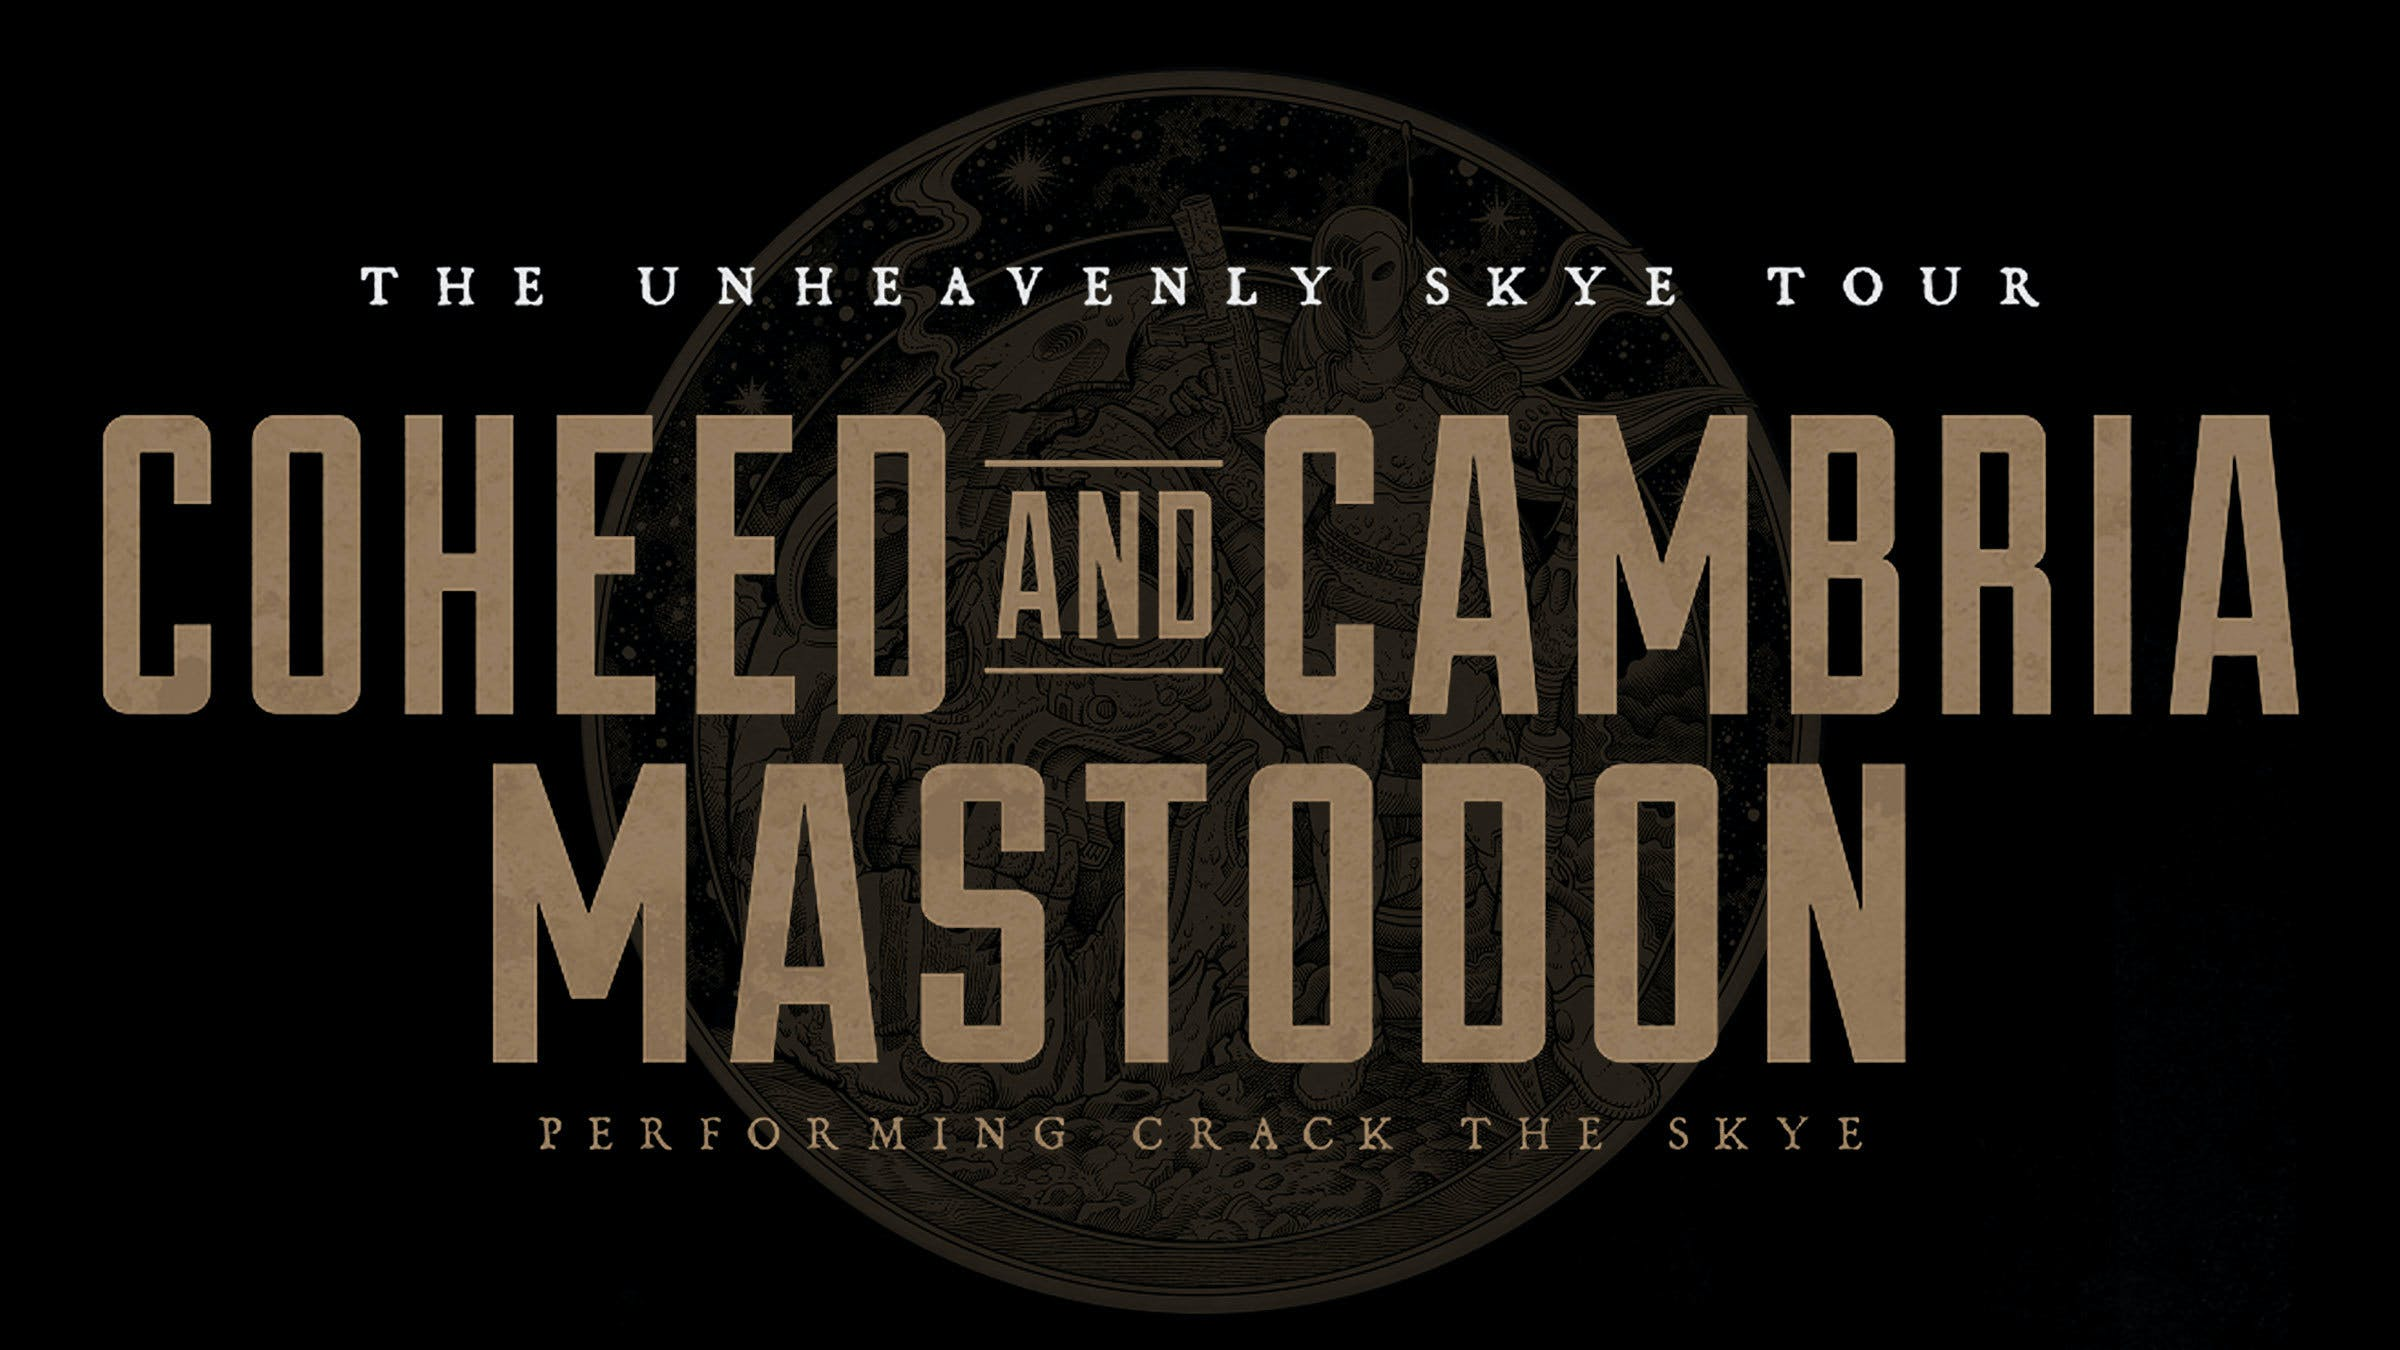 Mastodon, Coheed And Cambria, and Every Time I Die Announce U.S. Tour